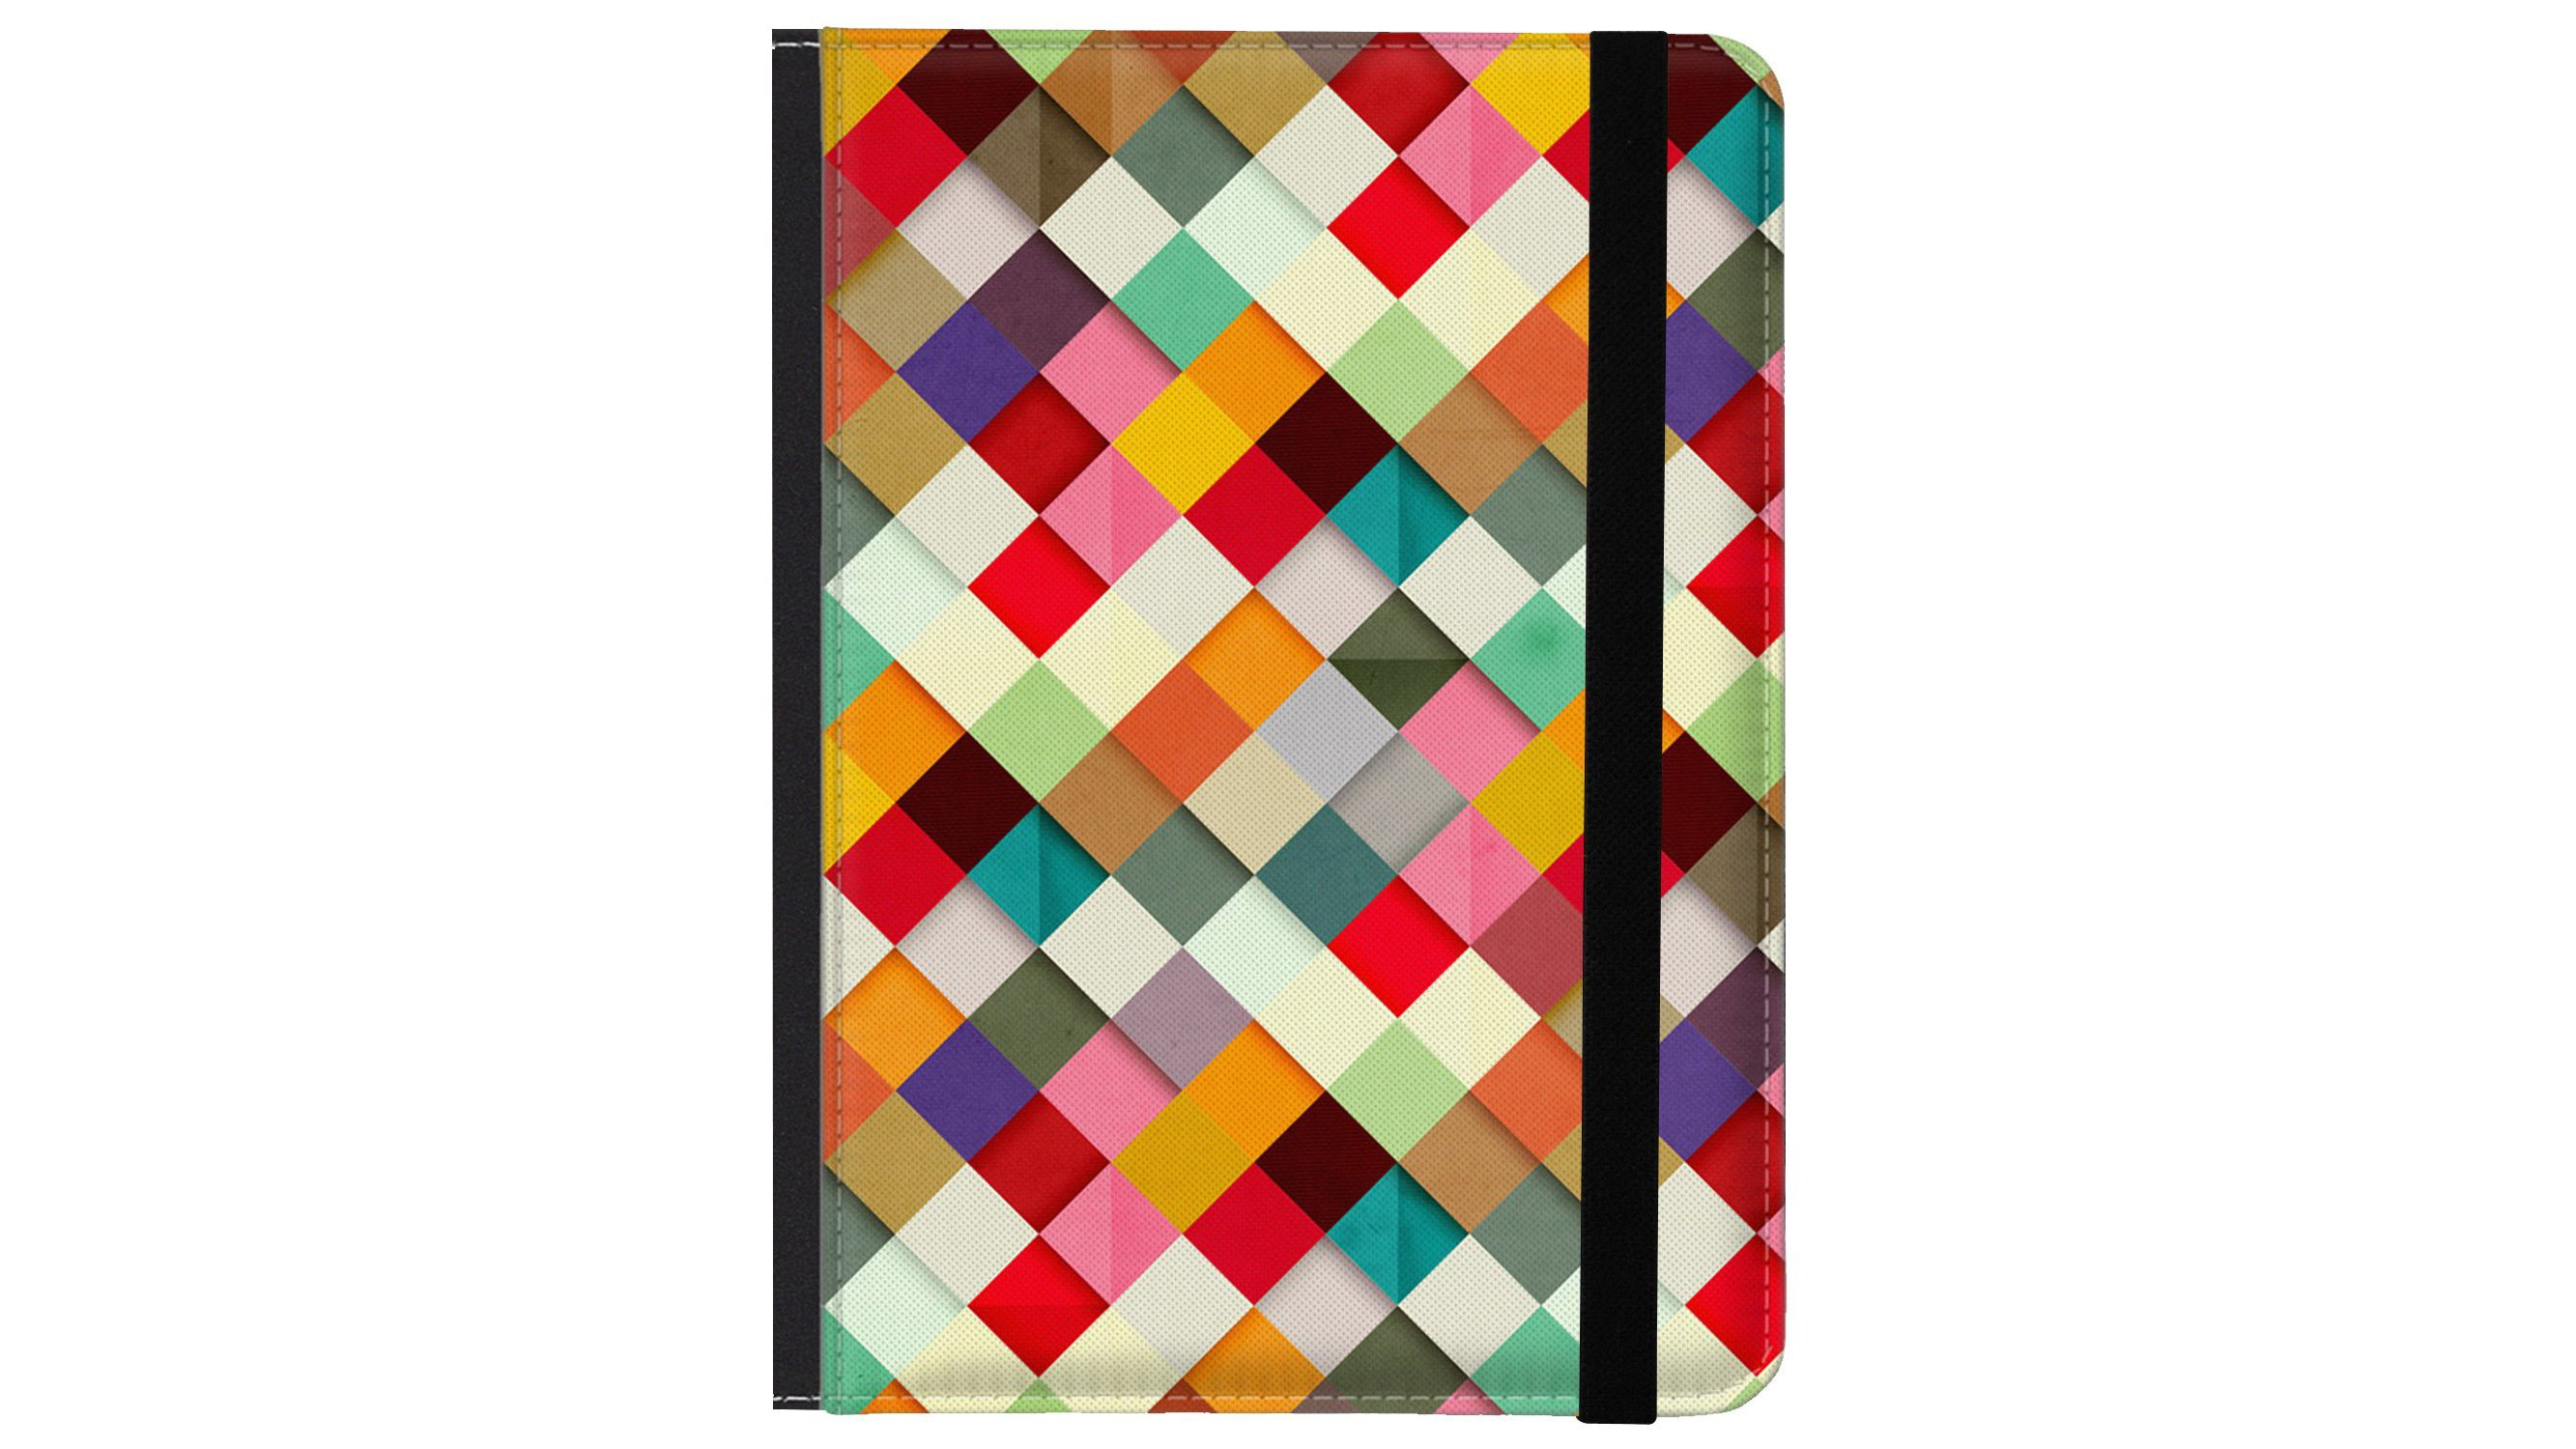 Best Kindle Paperwhite cases: Keep your Kindle clean and